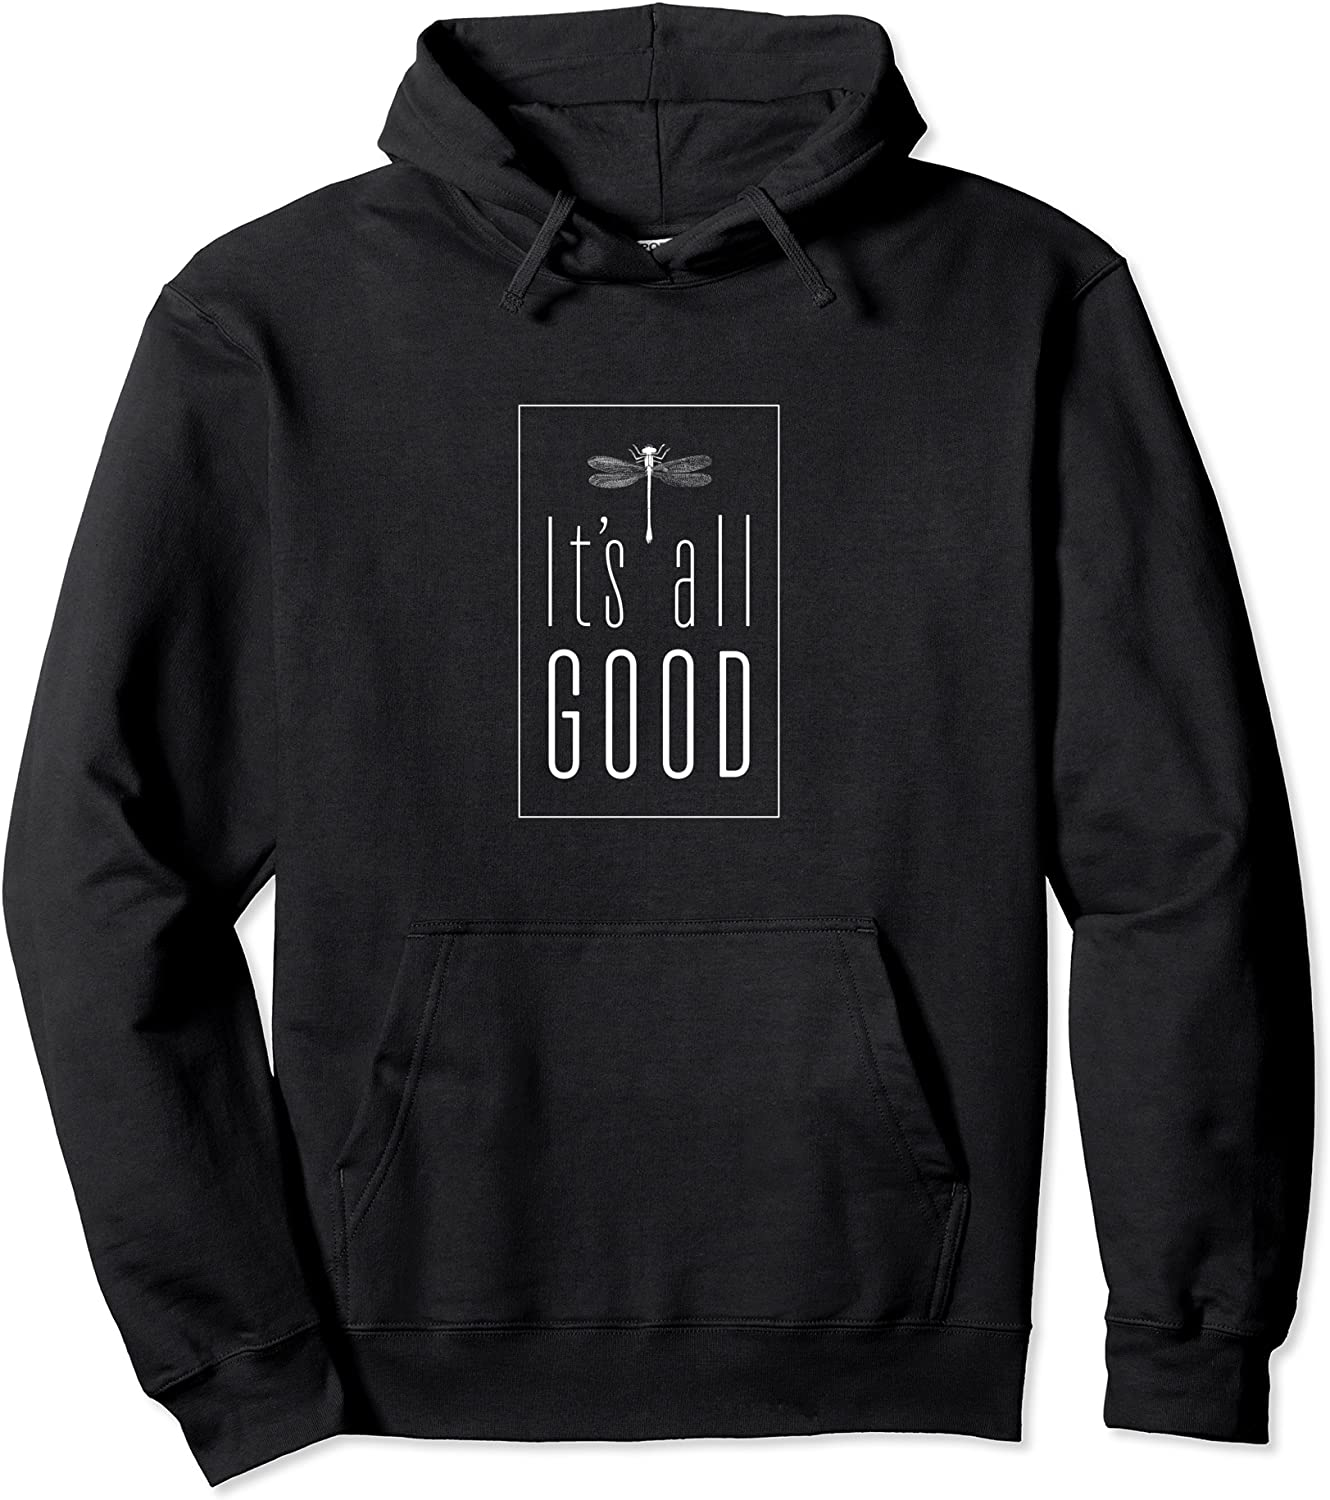 It's NEW before selling All GOOD Hoodie Regular store Dragonfly